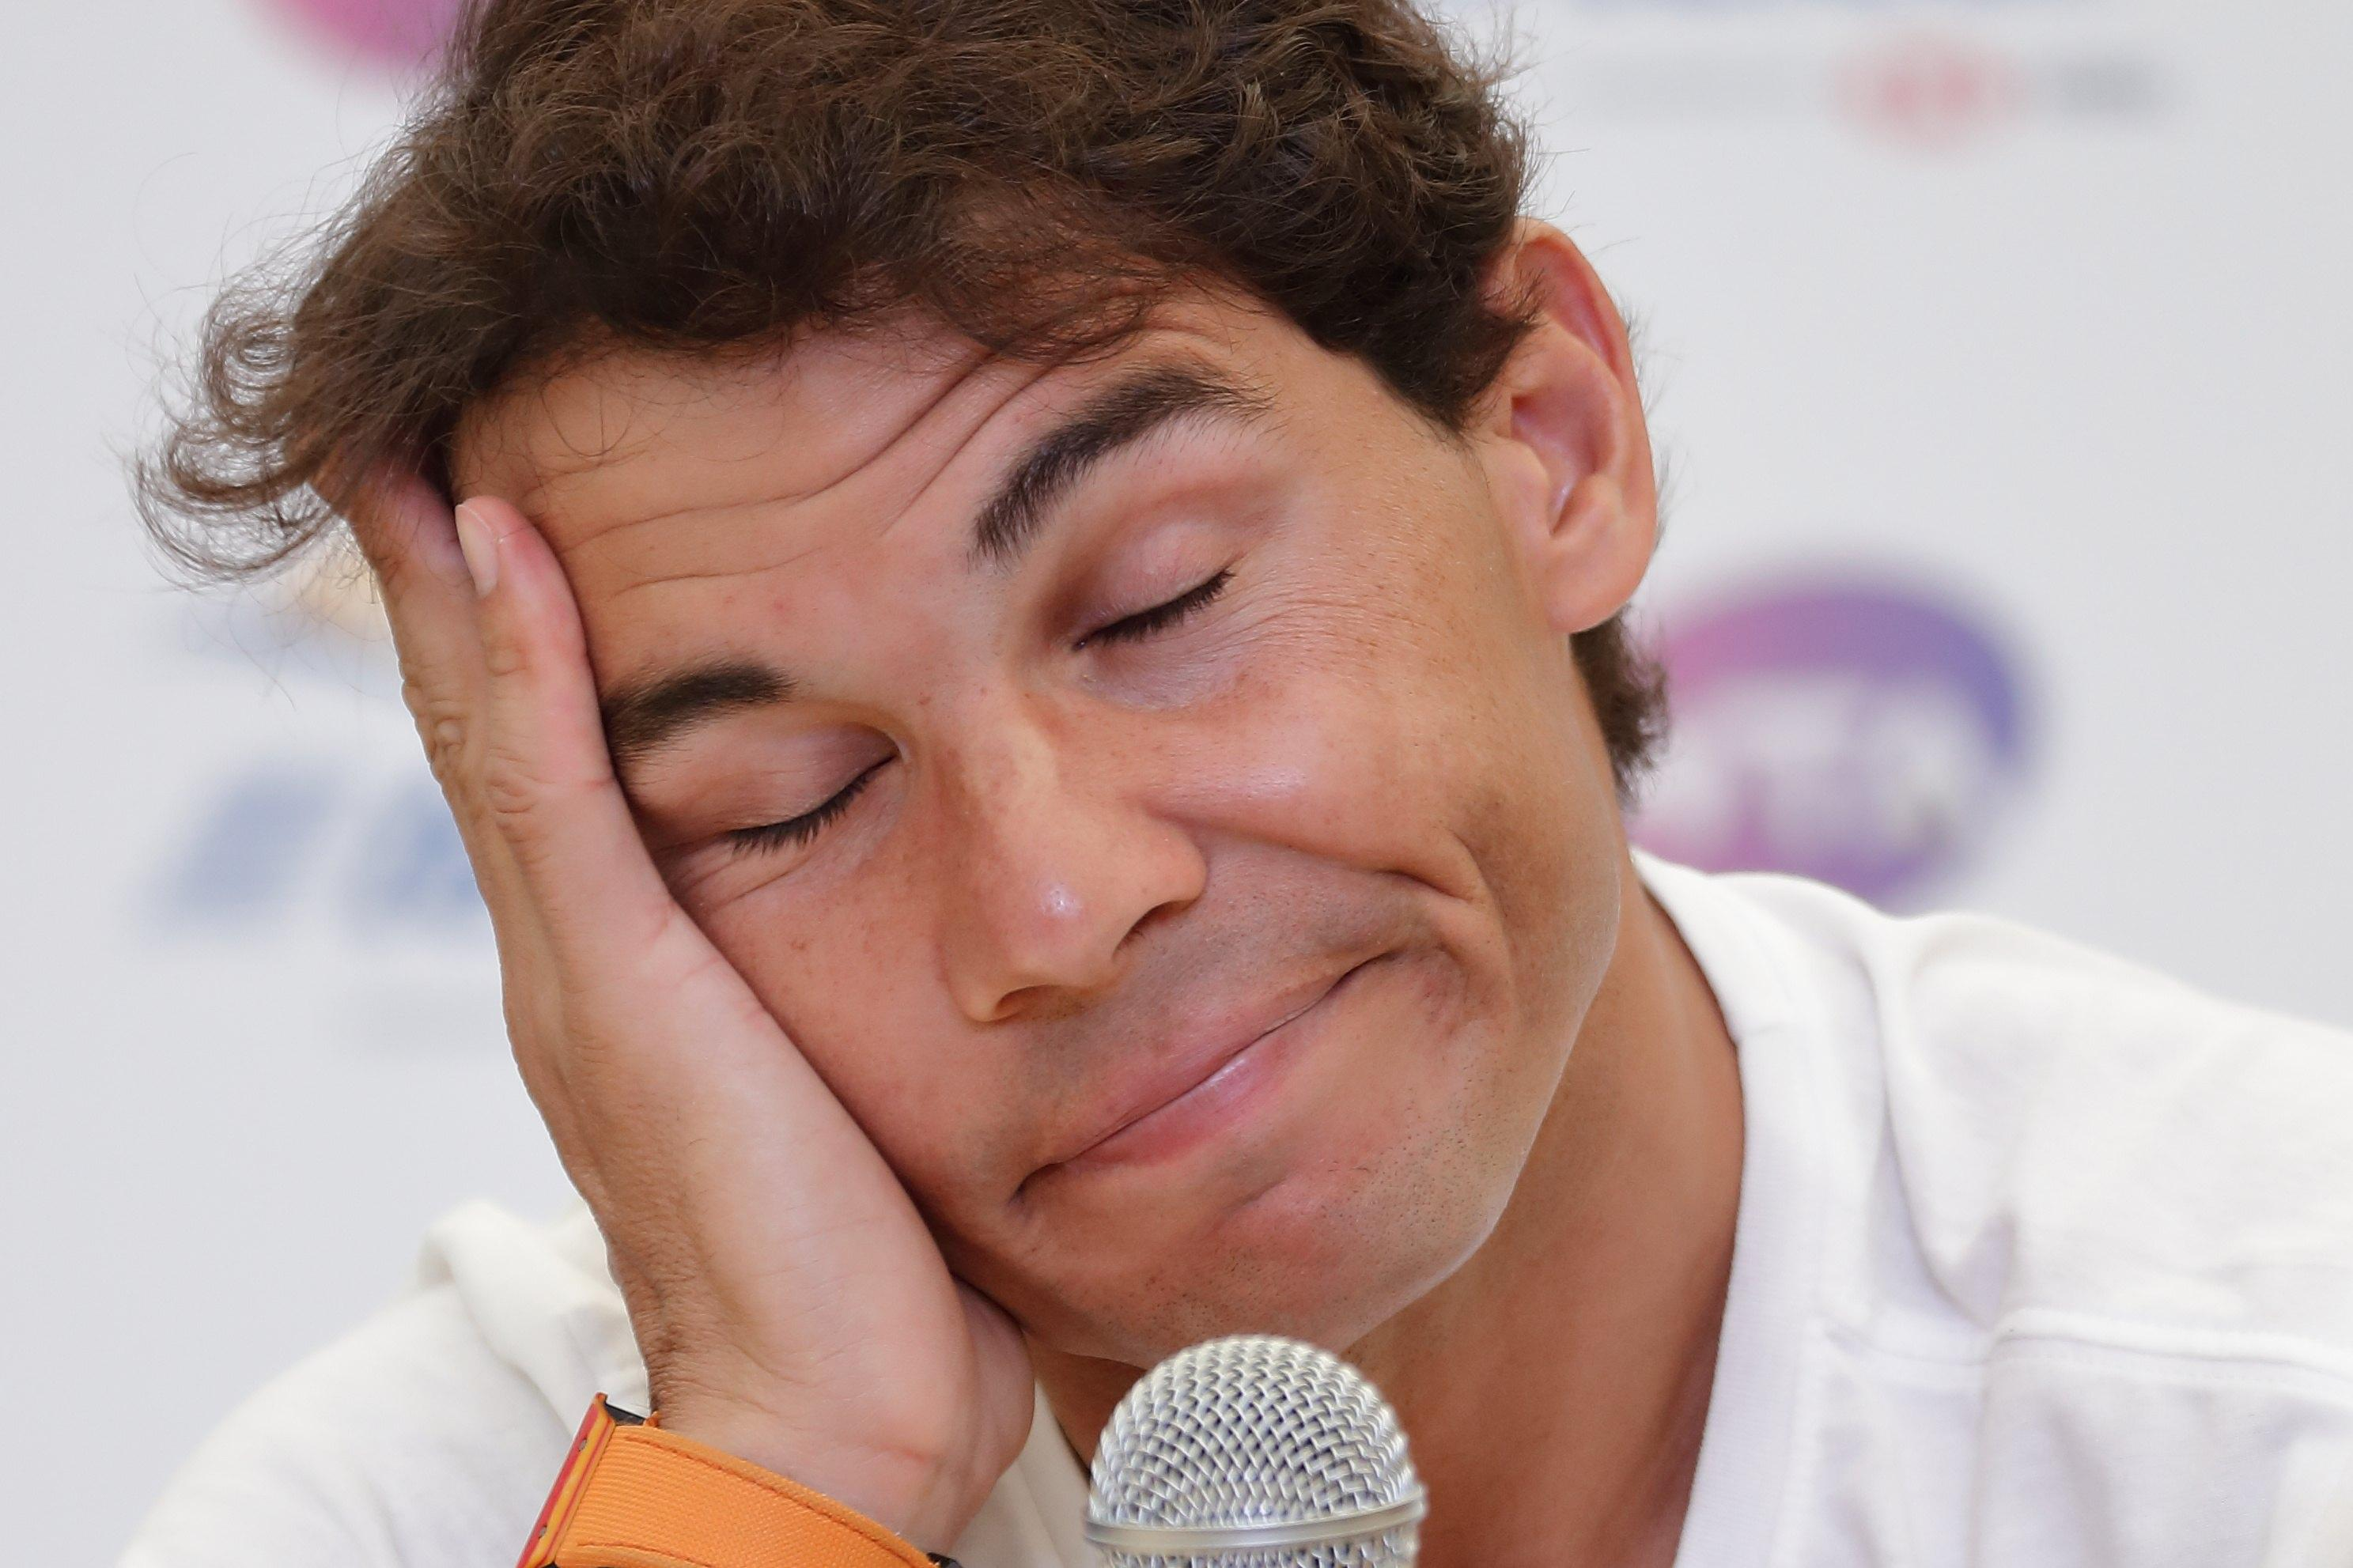 Rafa Nadal admitted to his uncle that he would swap some of his success less pain